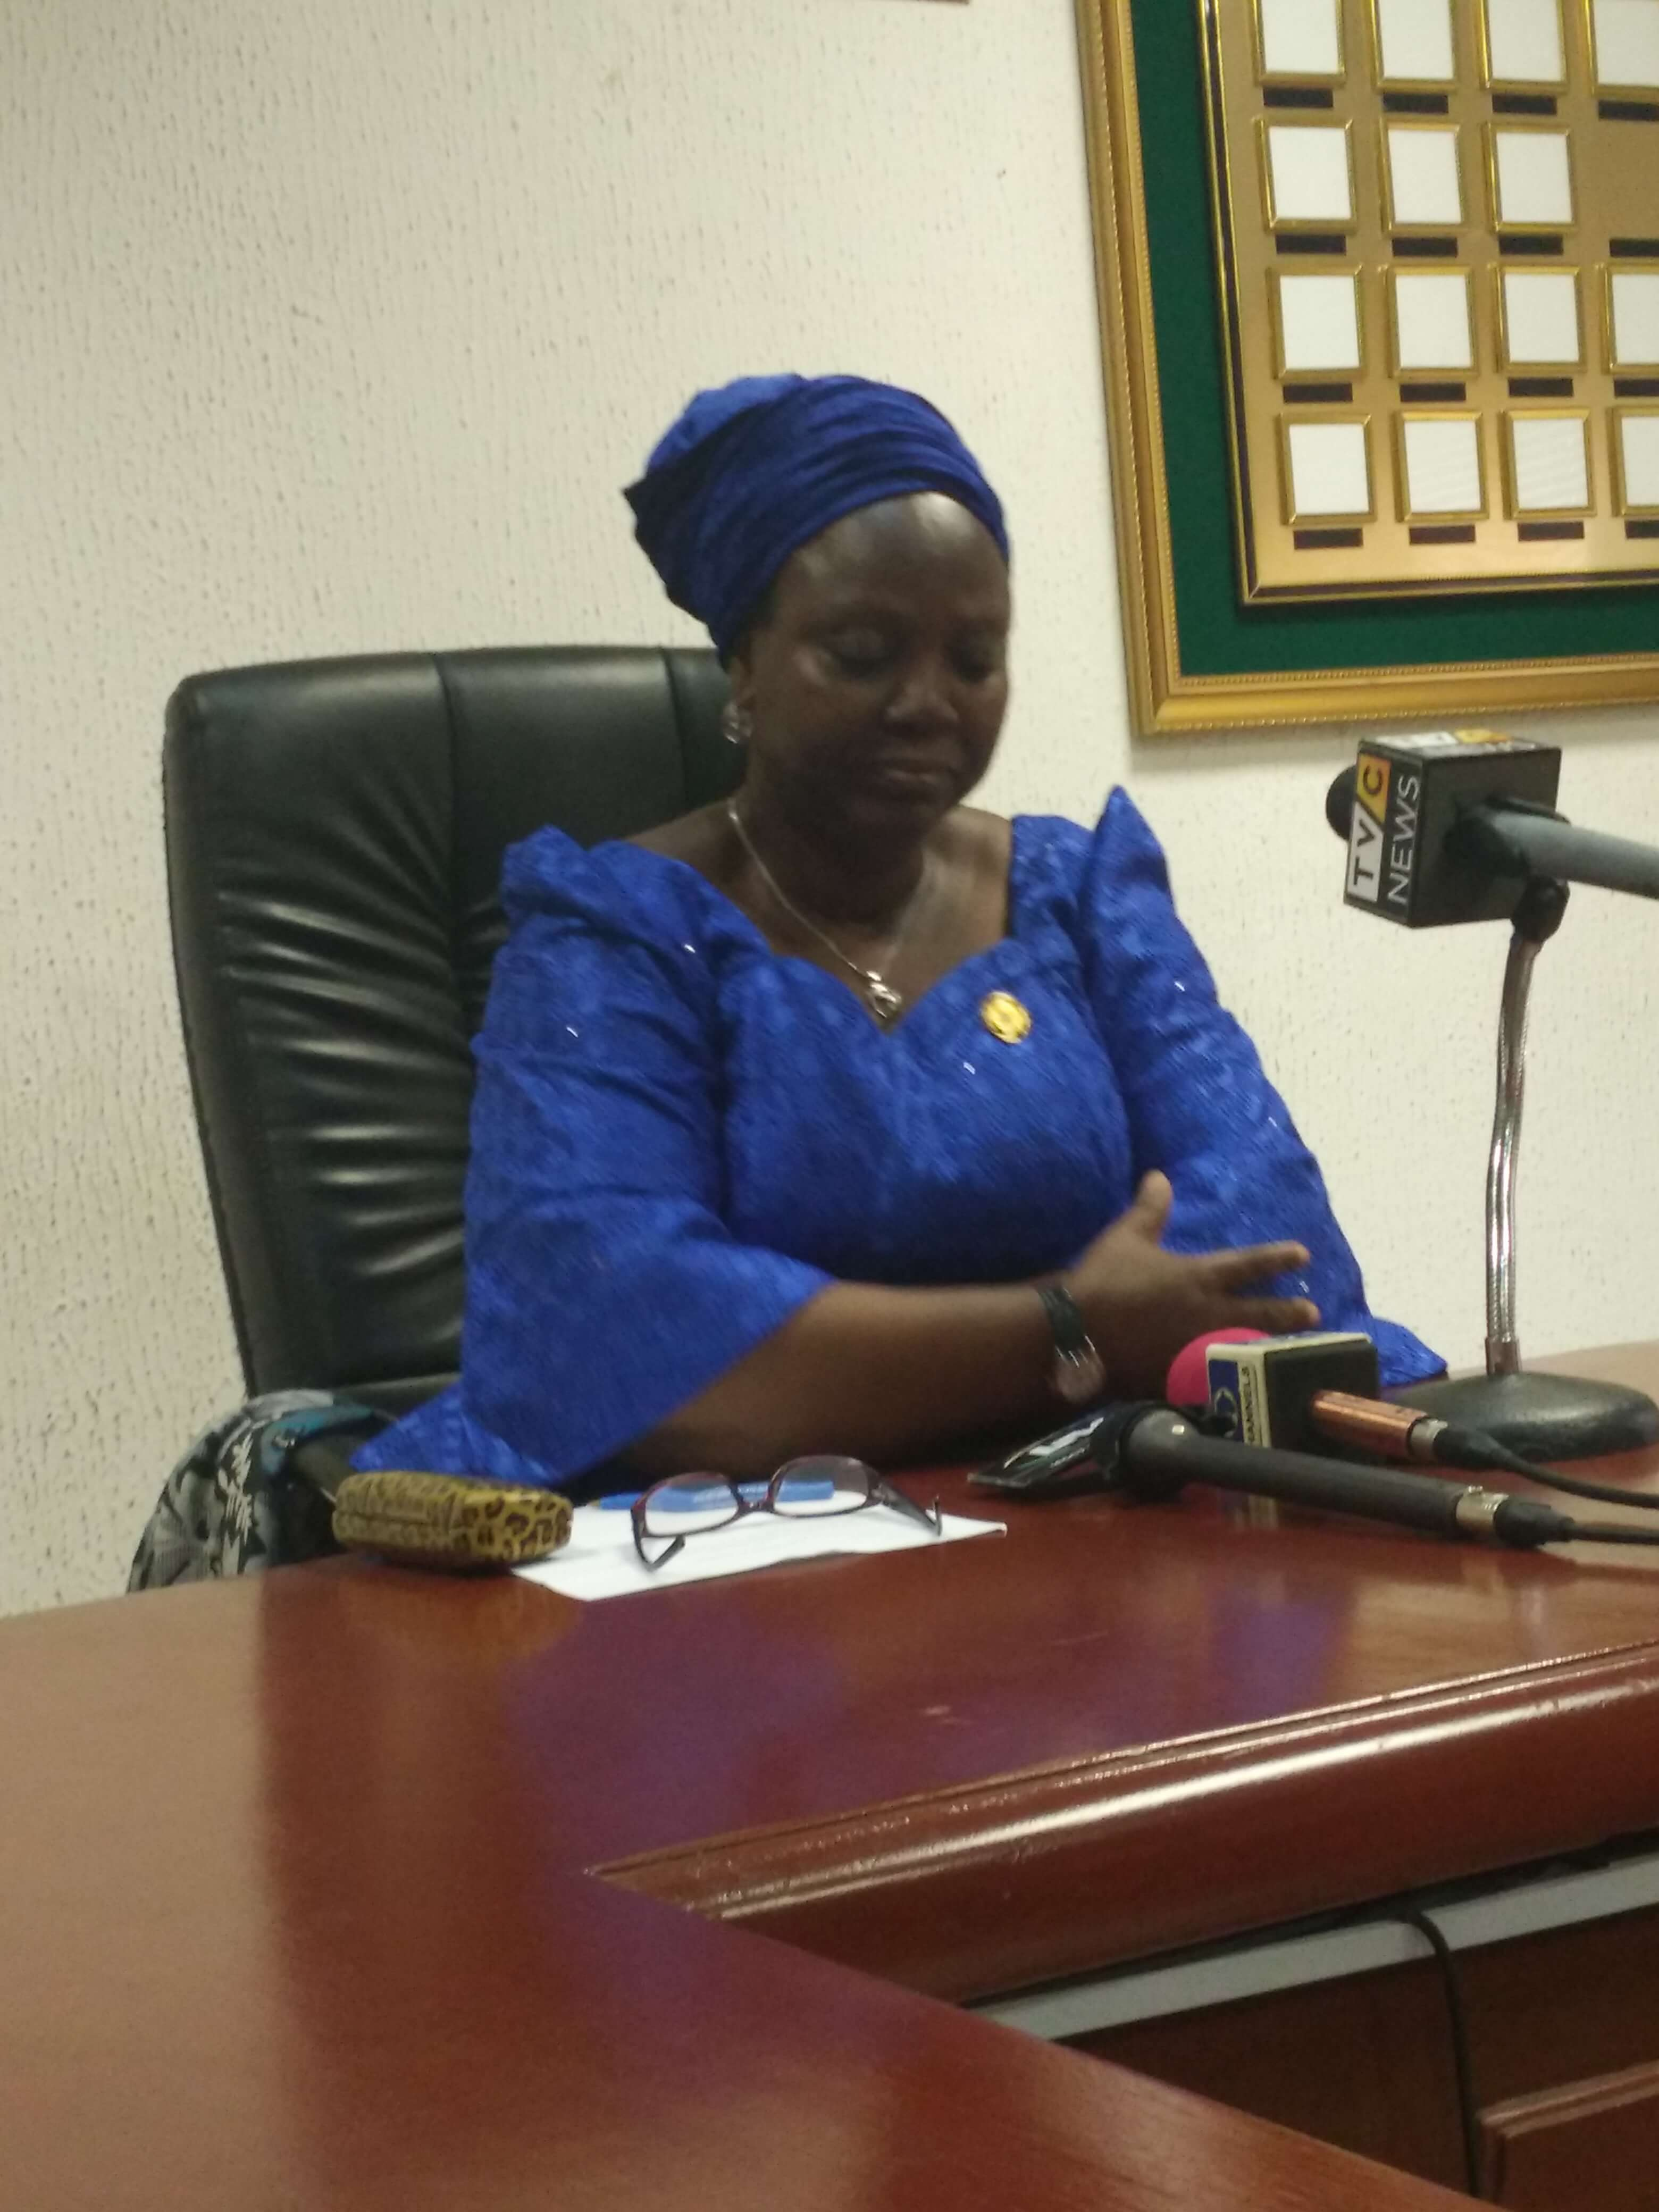 Lagos acting commissioner of Tourism, Arts and Culture, Adebimpe Akinsola